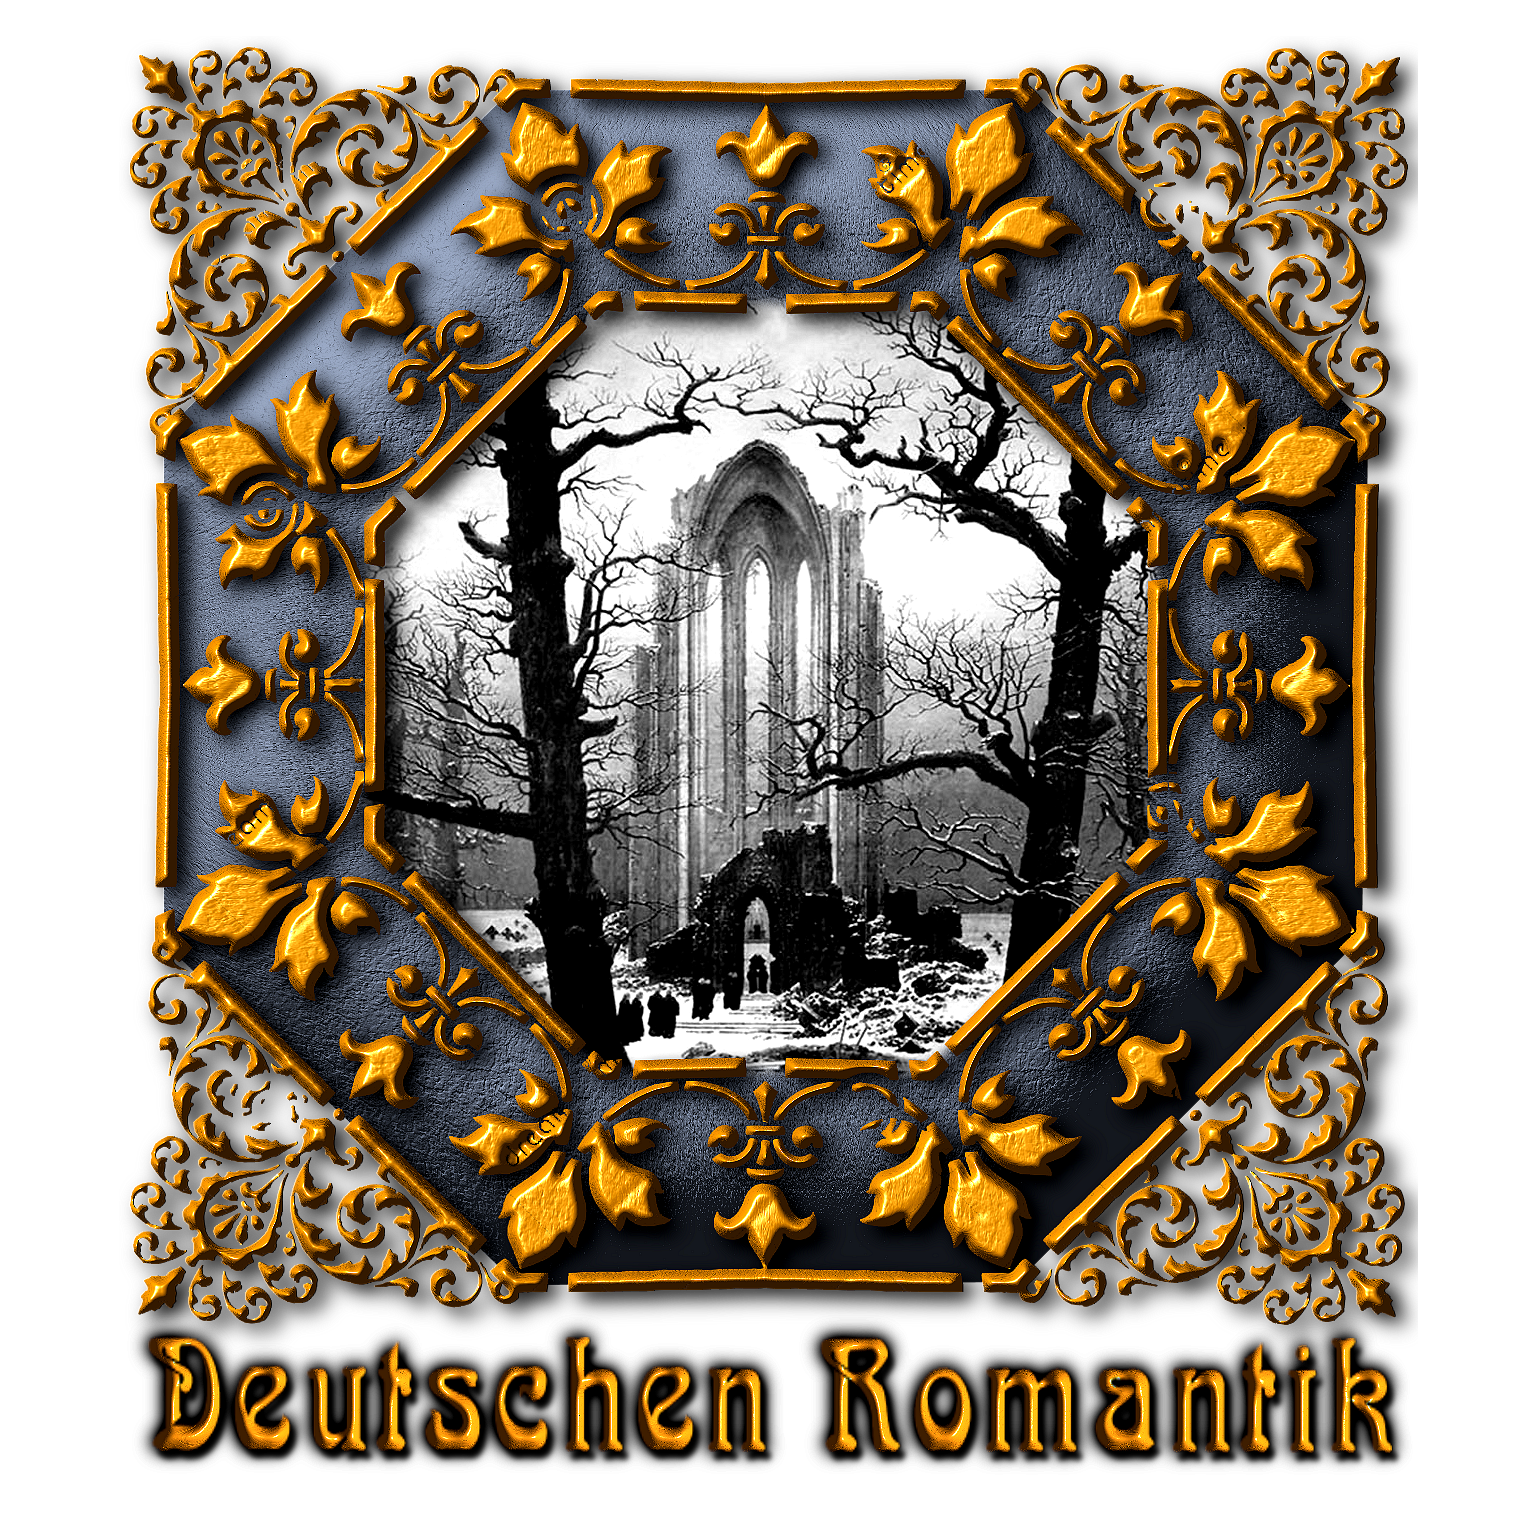 Continental clip german. Germany deutschen romantik romanticism